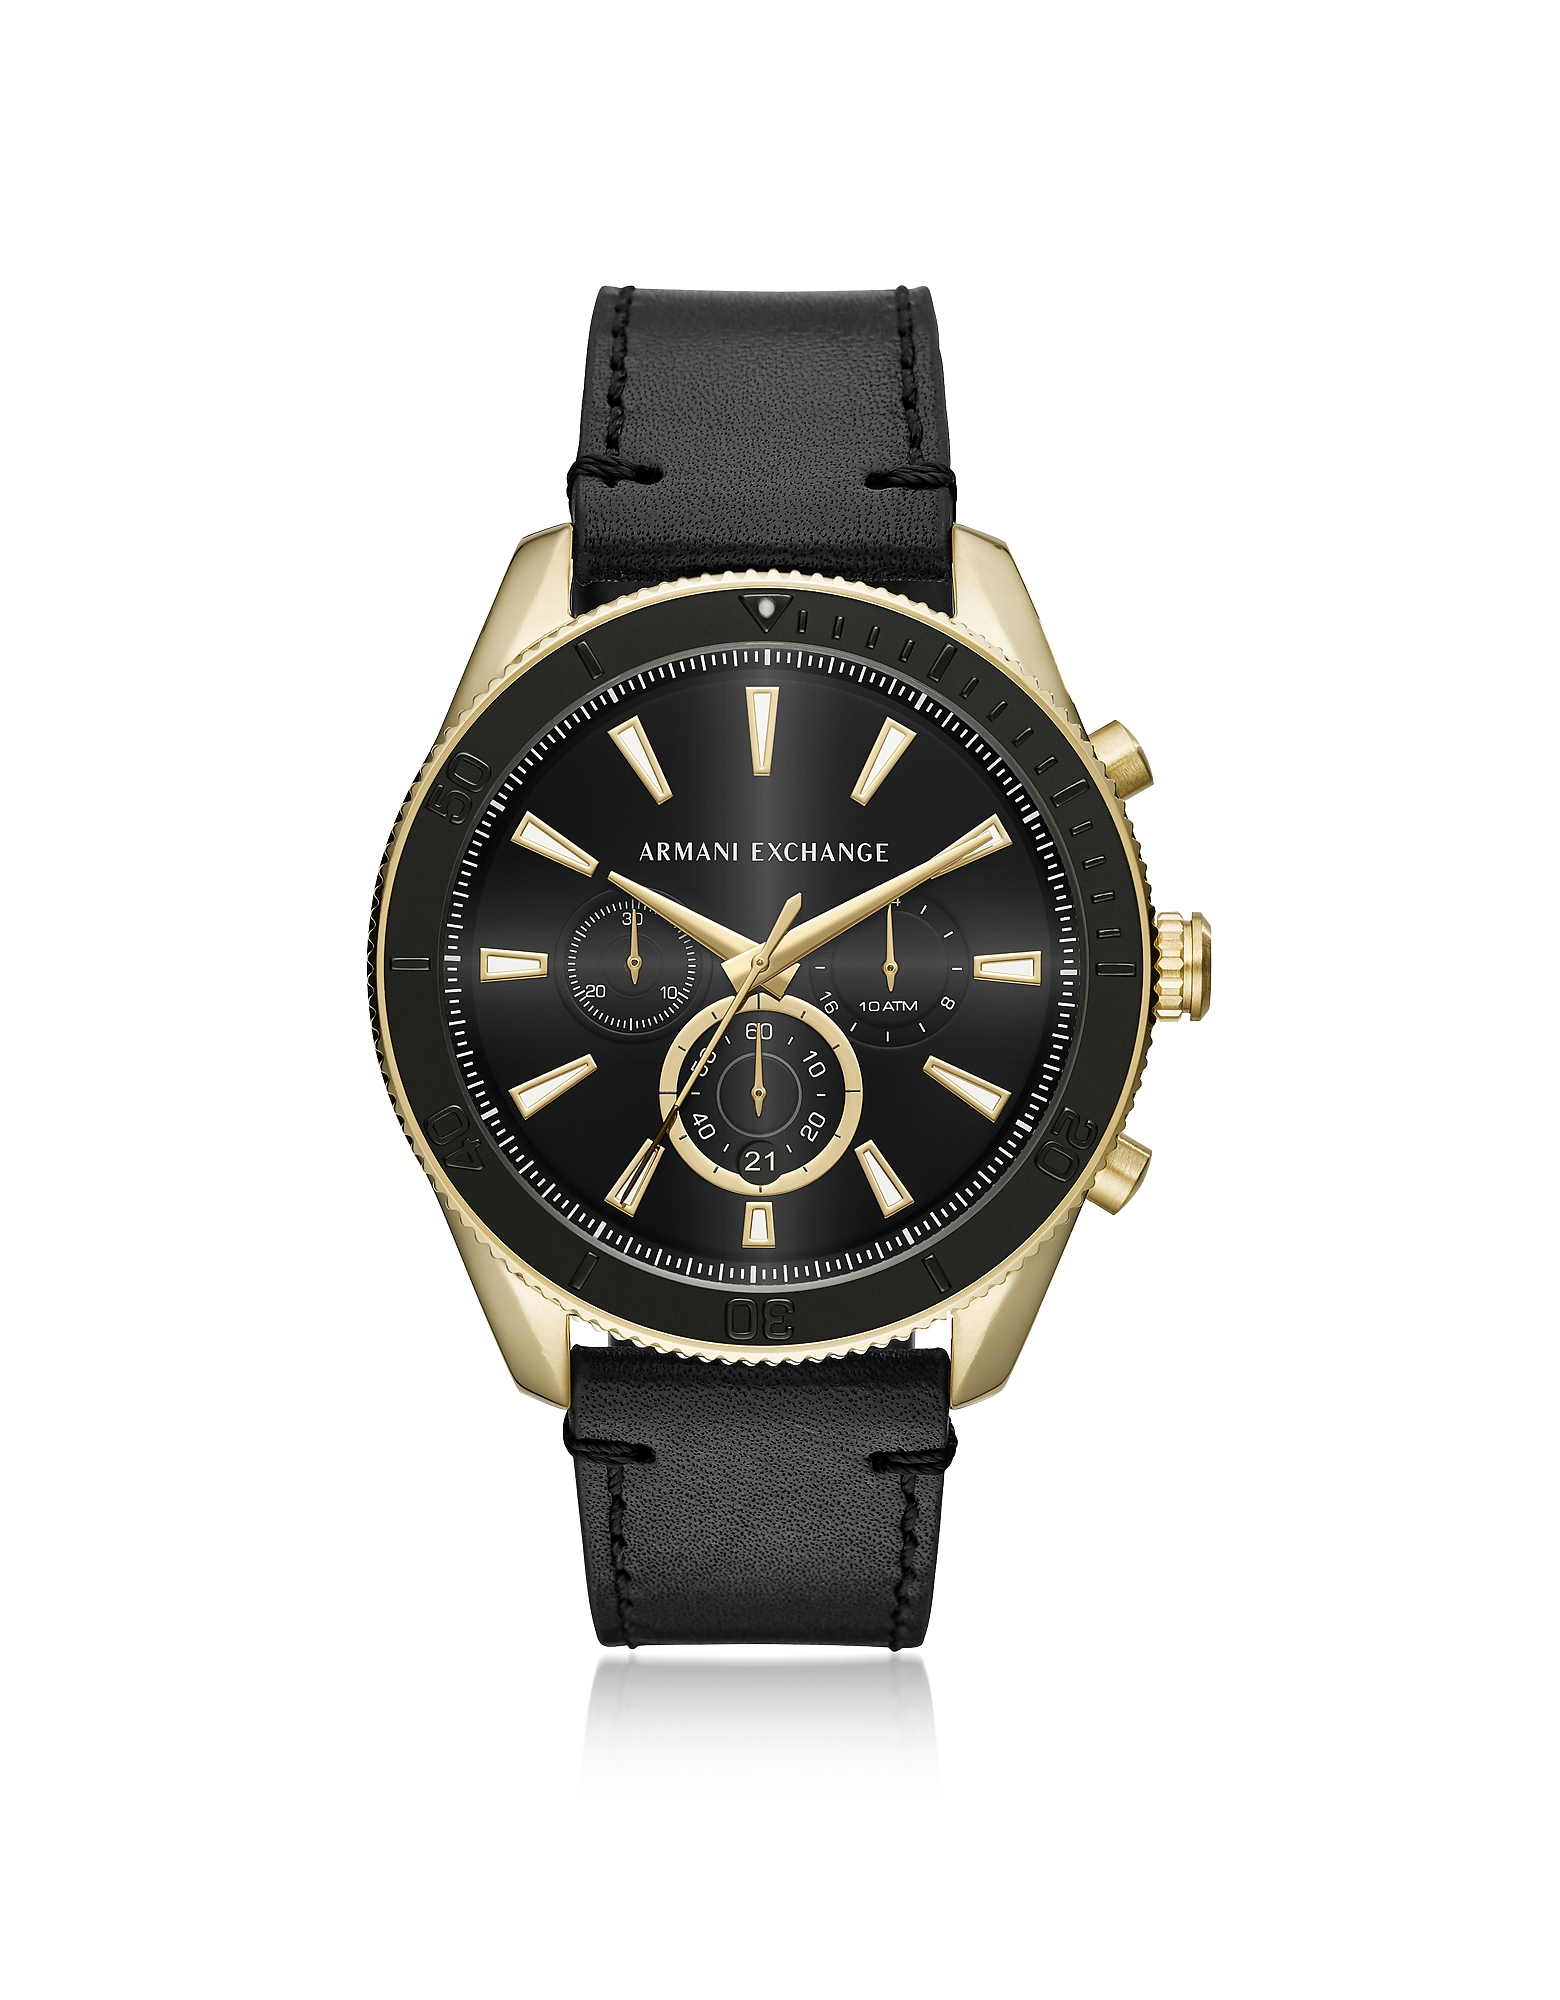 Armani Exchange Men's Watches, AIX Gold Tone and Black Leather Men's Chronograph Watch